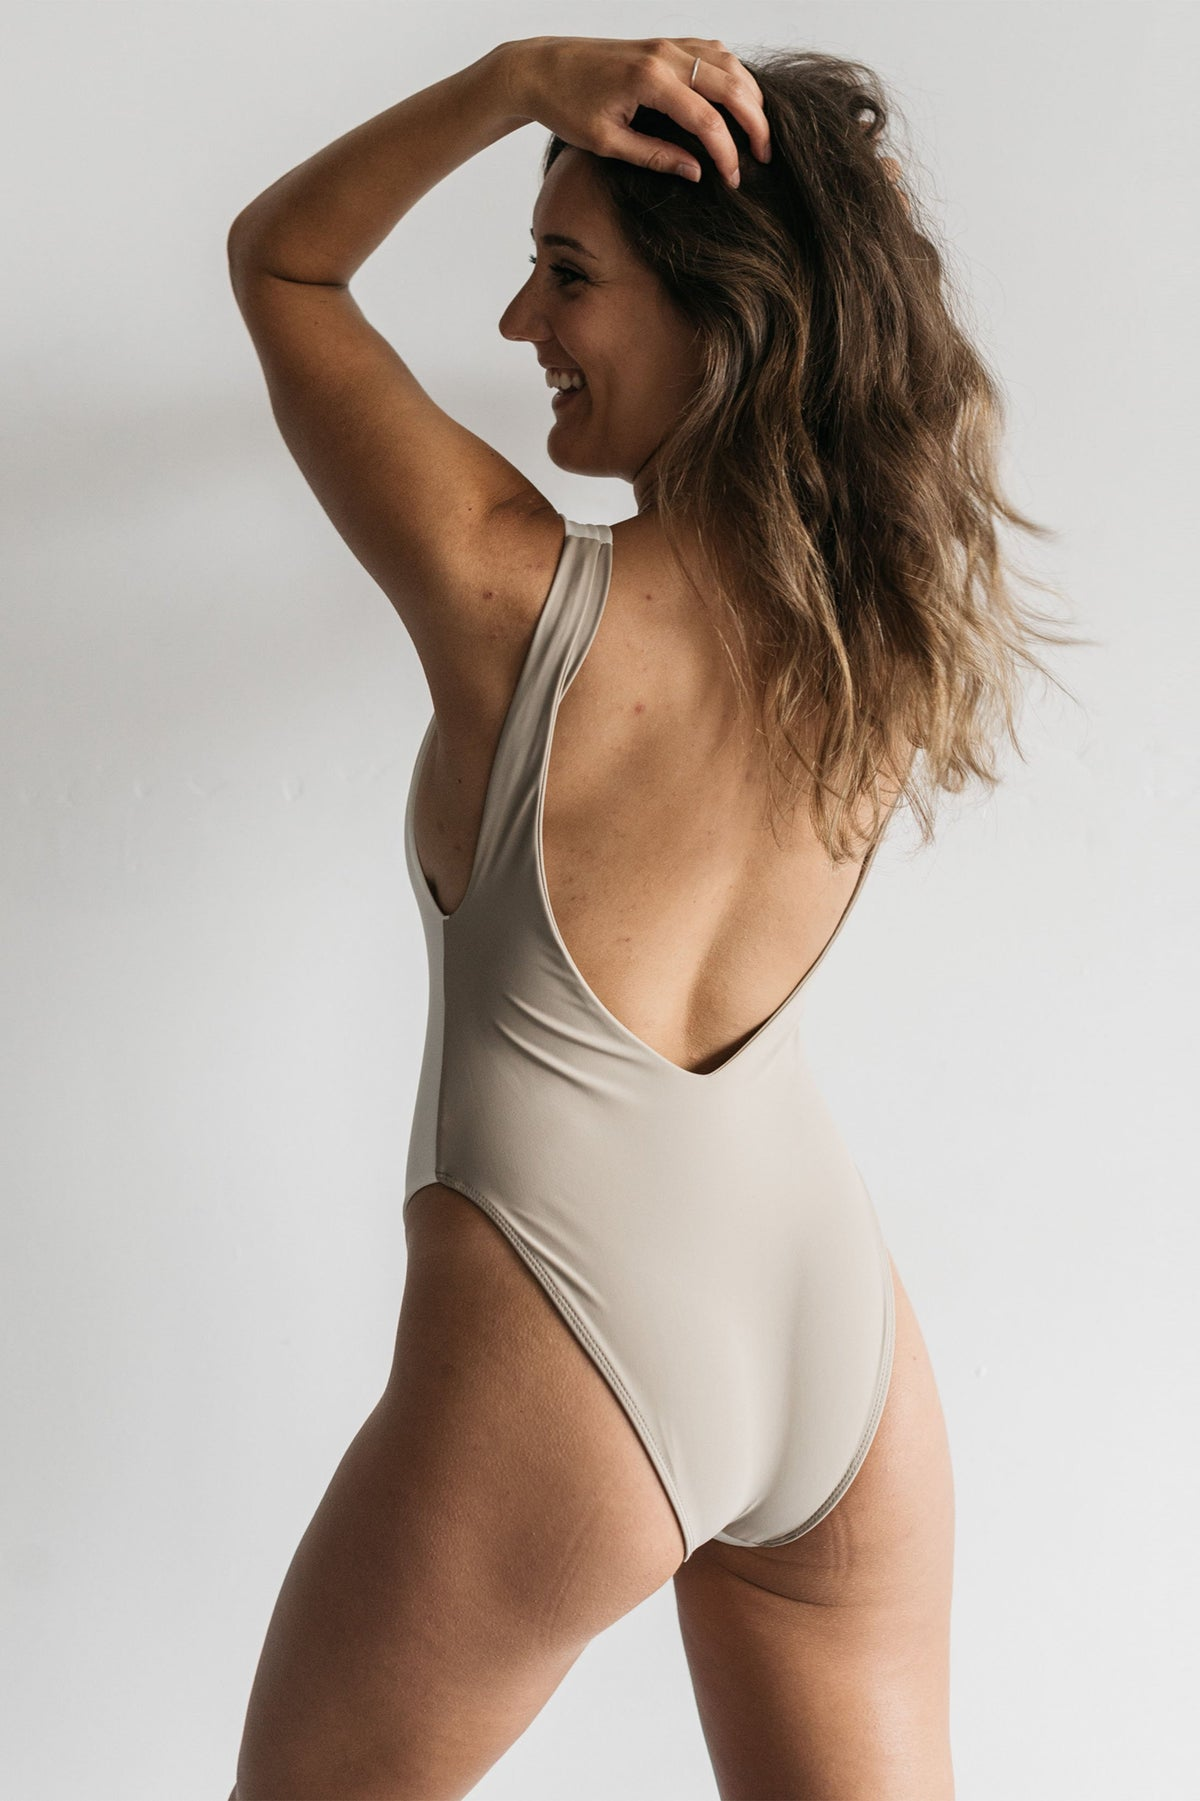 The back of a woman standing in front of a white wall with her hands in her hair looking to the side wearing a white and nude color blocked one piece swimsuit with a low back and minimal coverage.